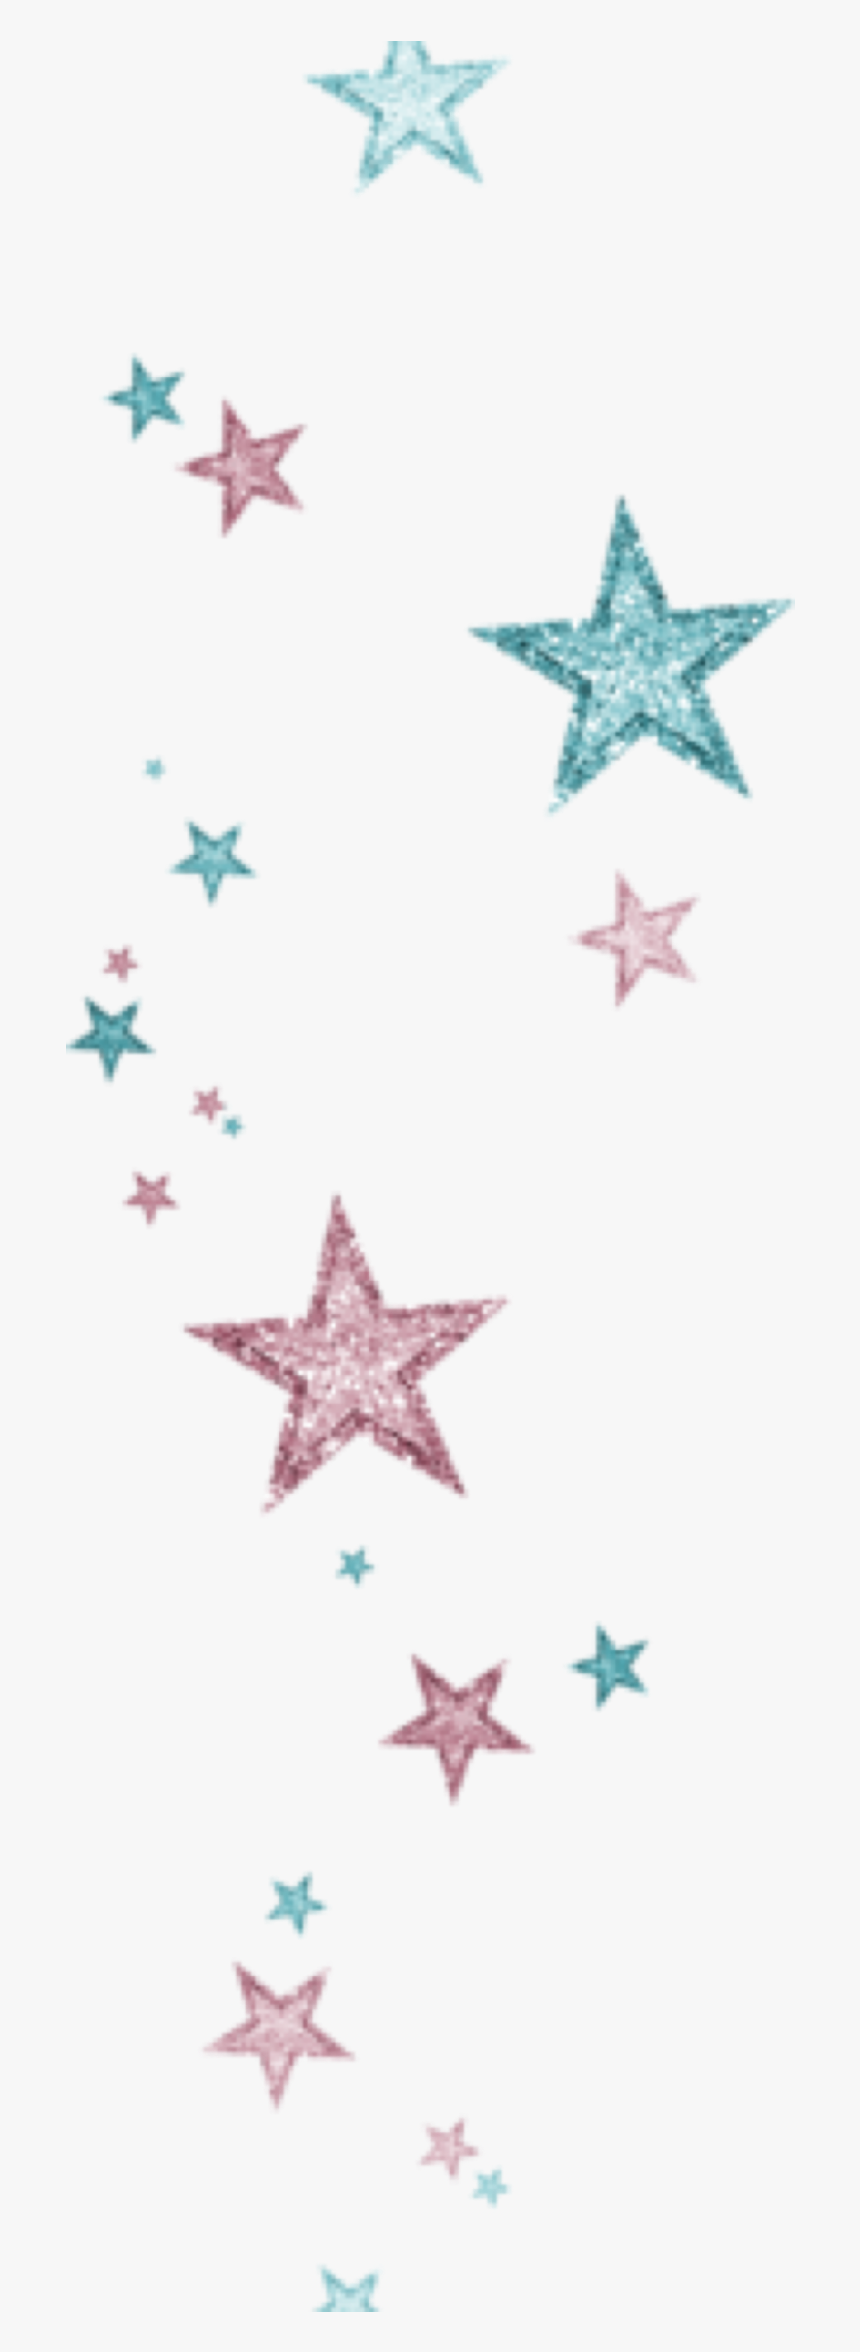 #star #stars #blue #rainbow #light #dust #grunge #shiny - Textile, HD Png Download, Free Download